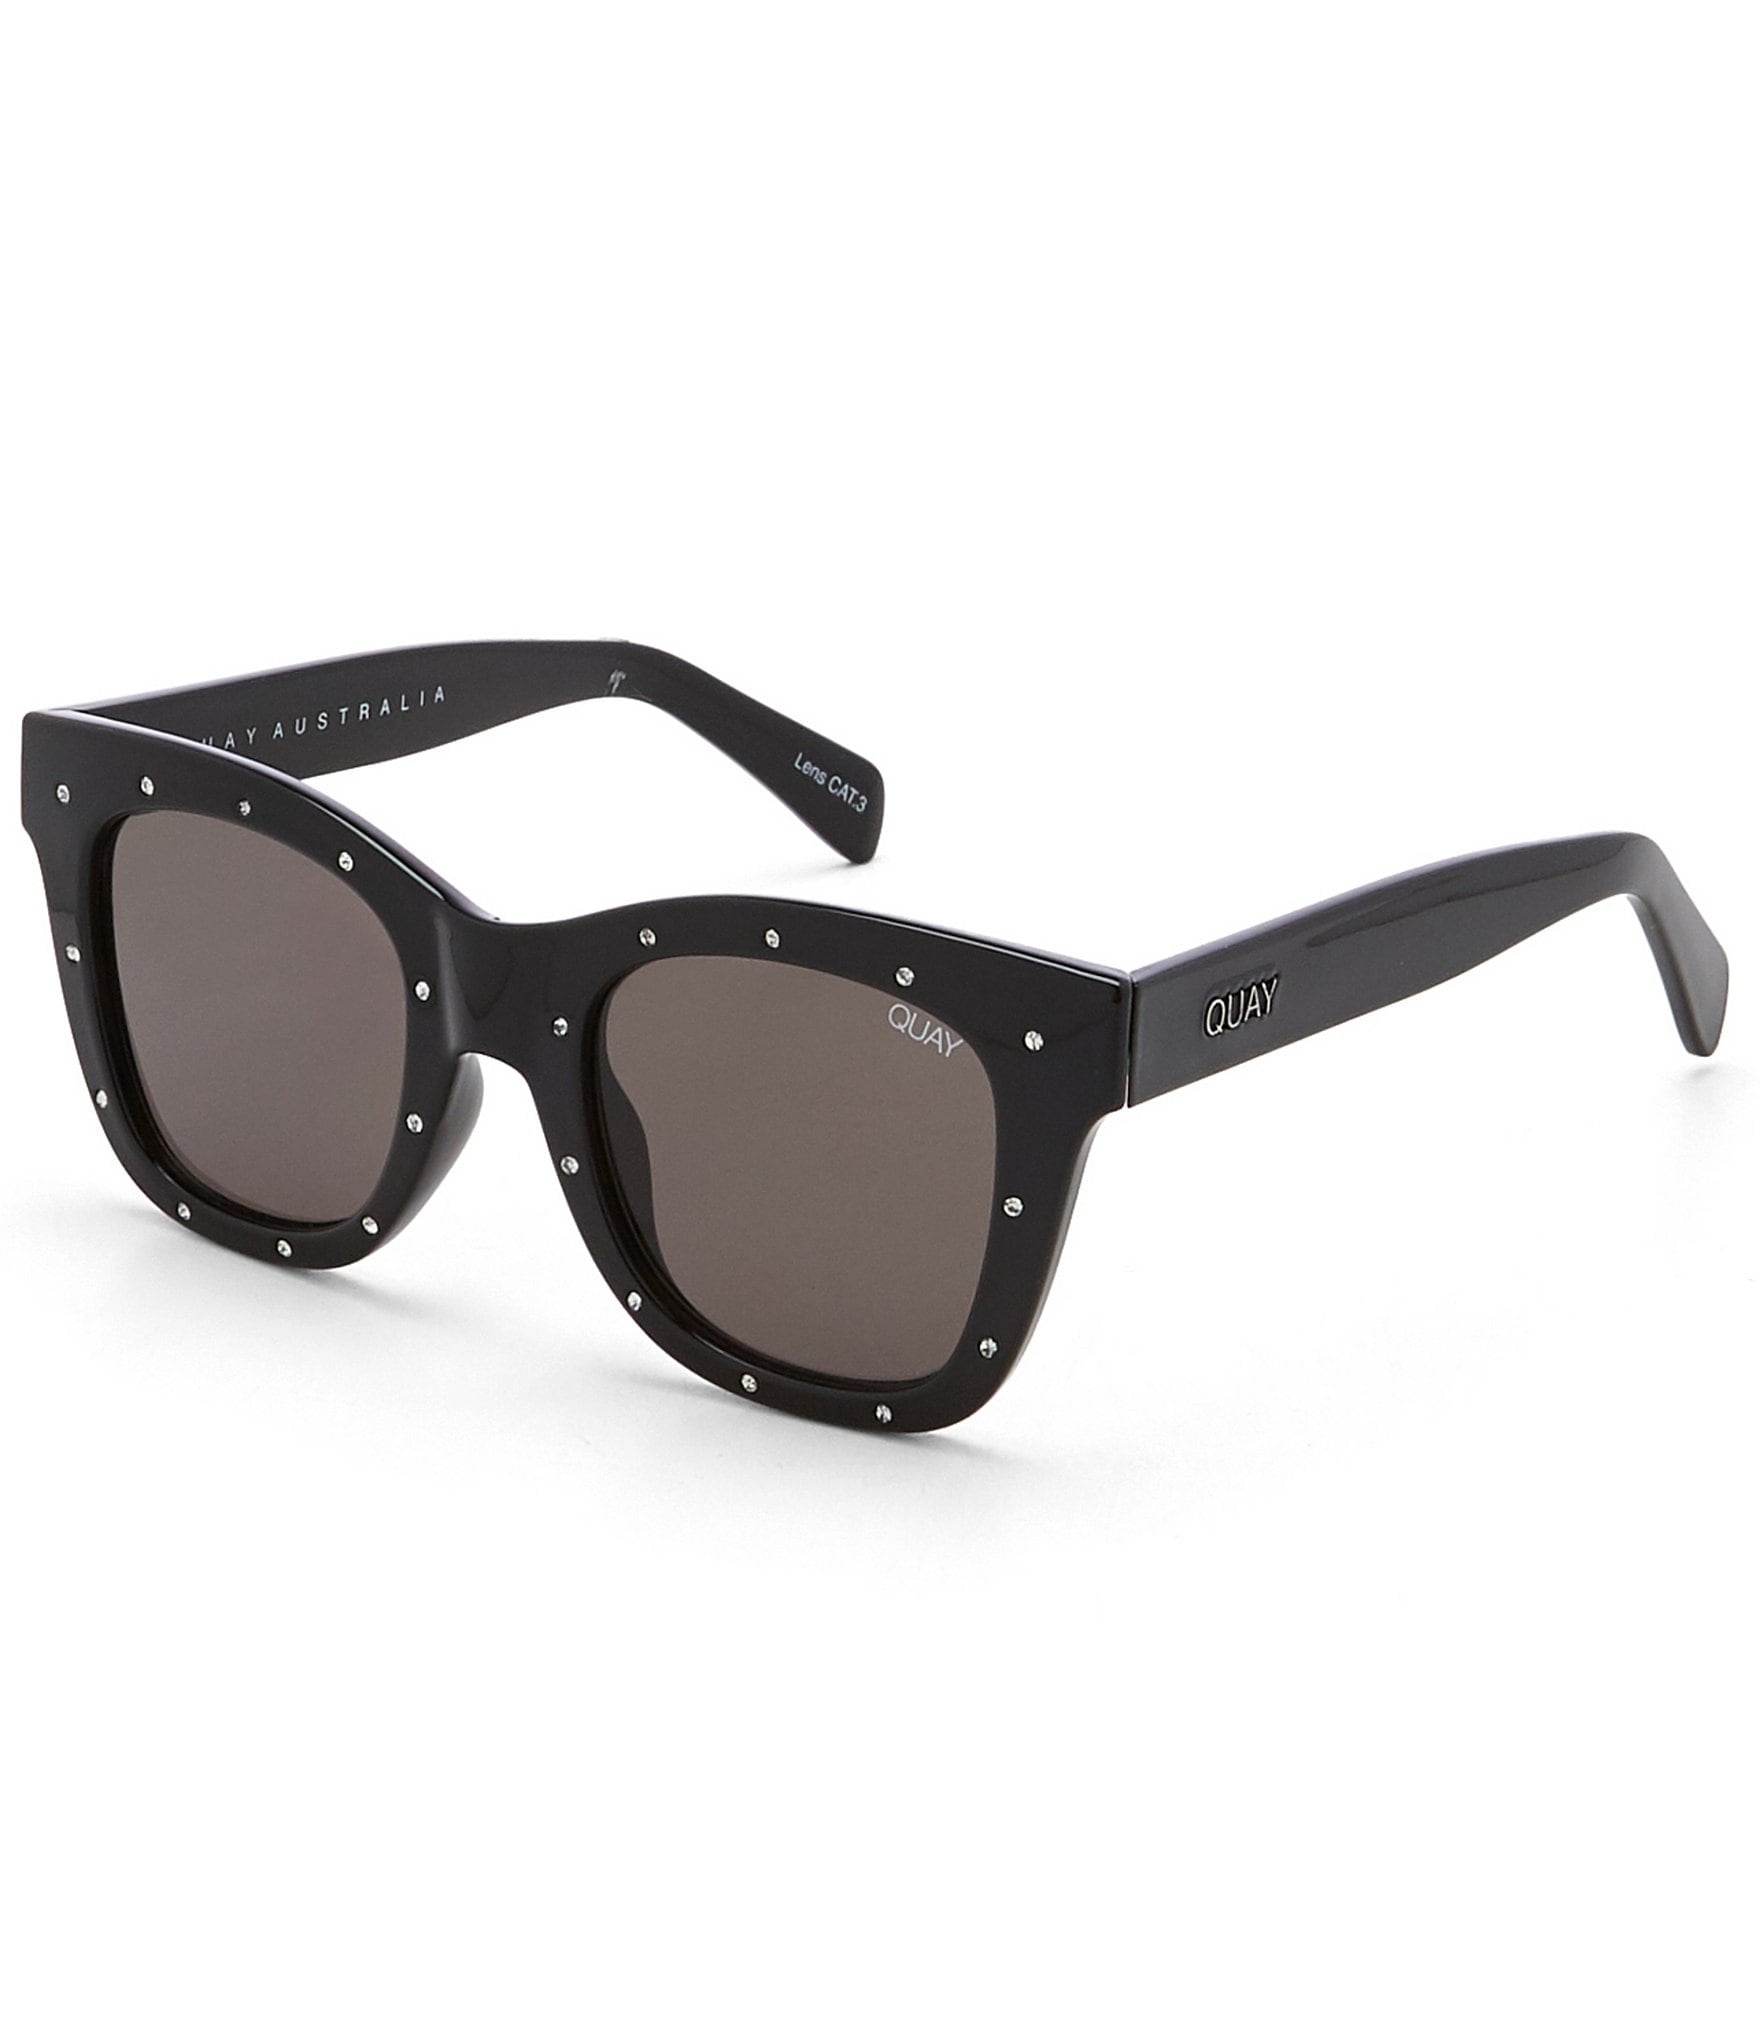 Quay Australia After Hours Square Sunglasses Dillard S Find hours of operation, street address, driving map, and address, contact information, & hours of operation for all dillard's locations. quay australia after hours square sunglasses dillard s